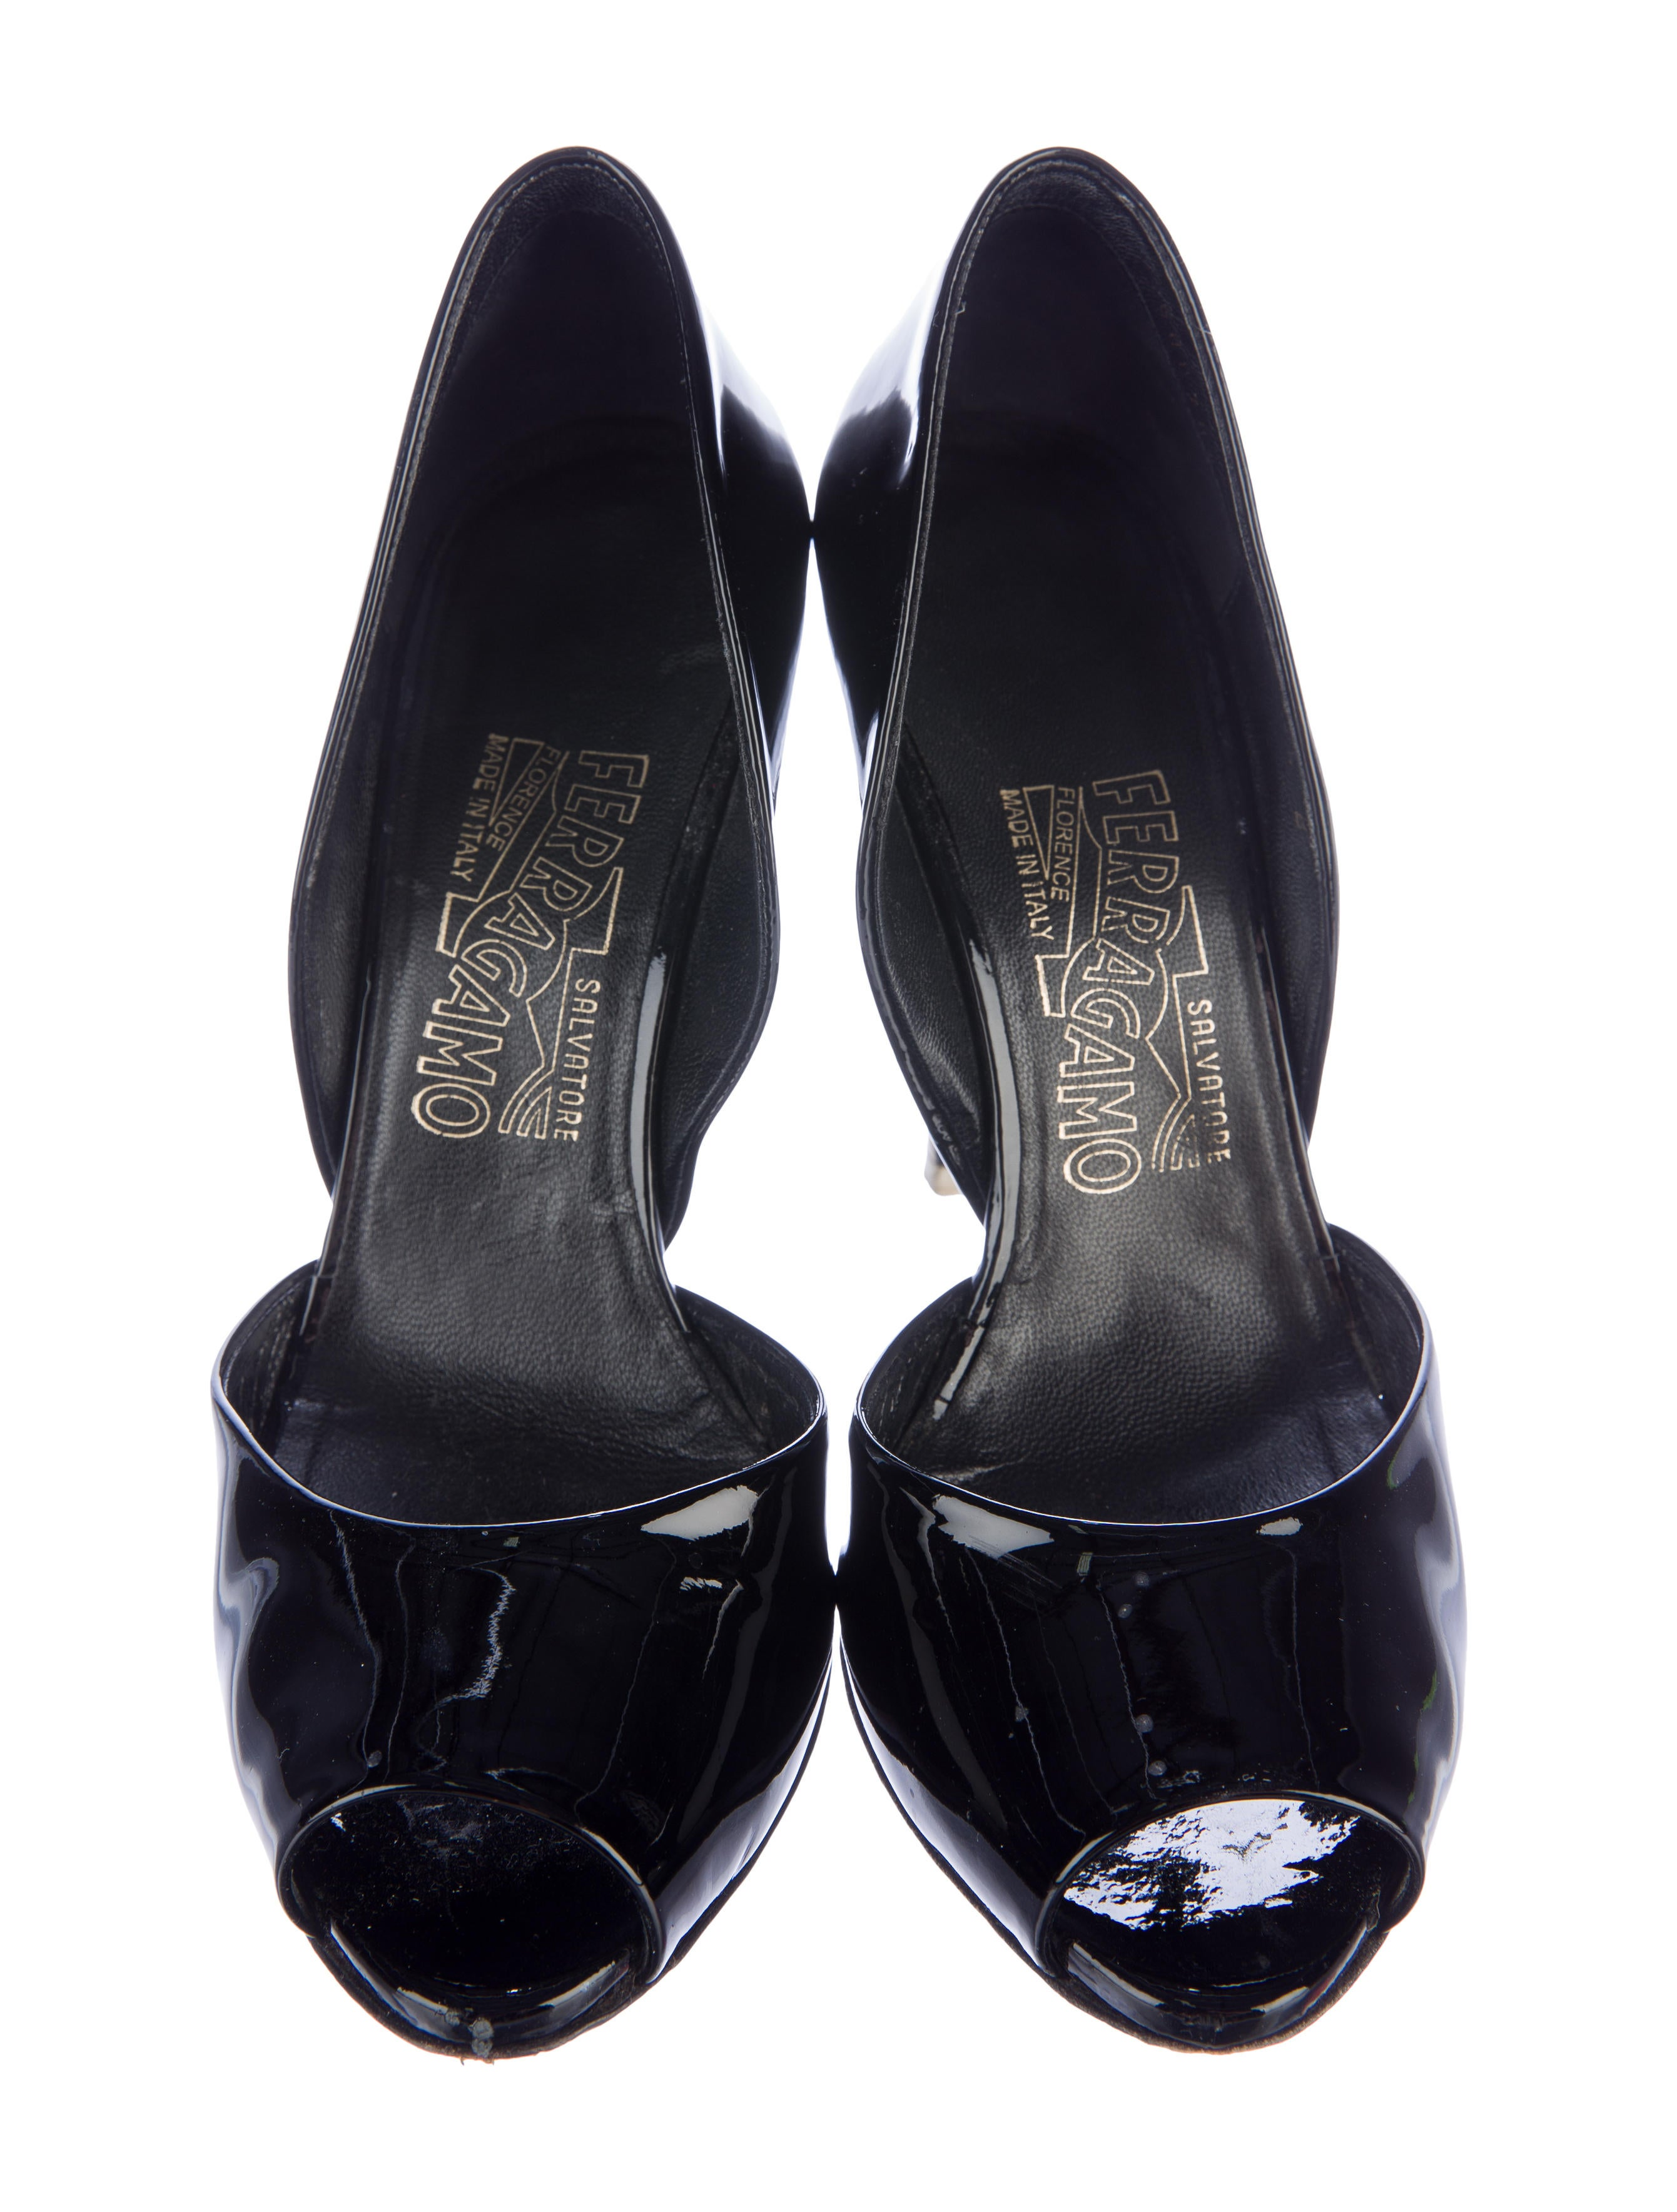 salvatore ferragamo patent leather peep toe pumps shoes sal43670 the realreal. Black Bedroom Furniture Sets. Home Design Ideas